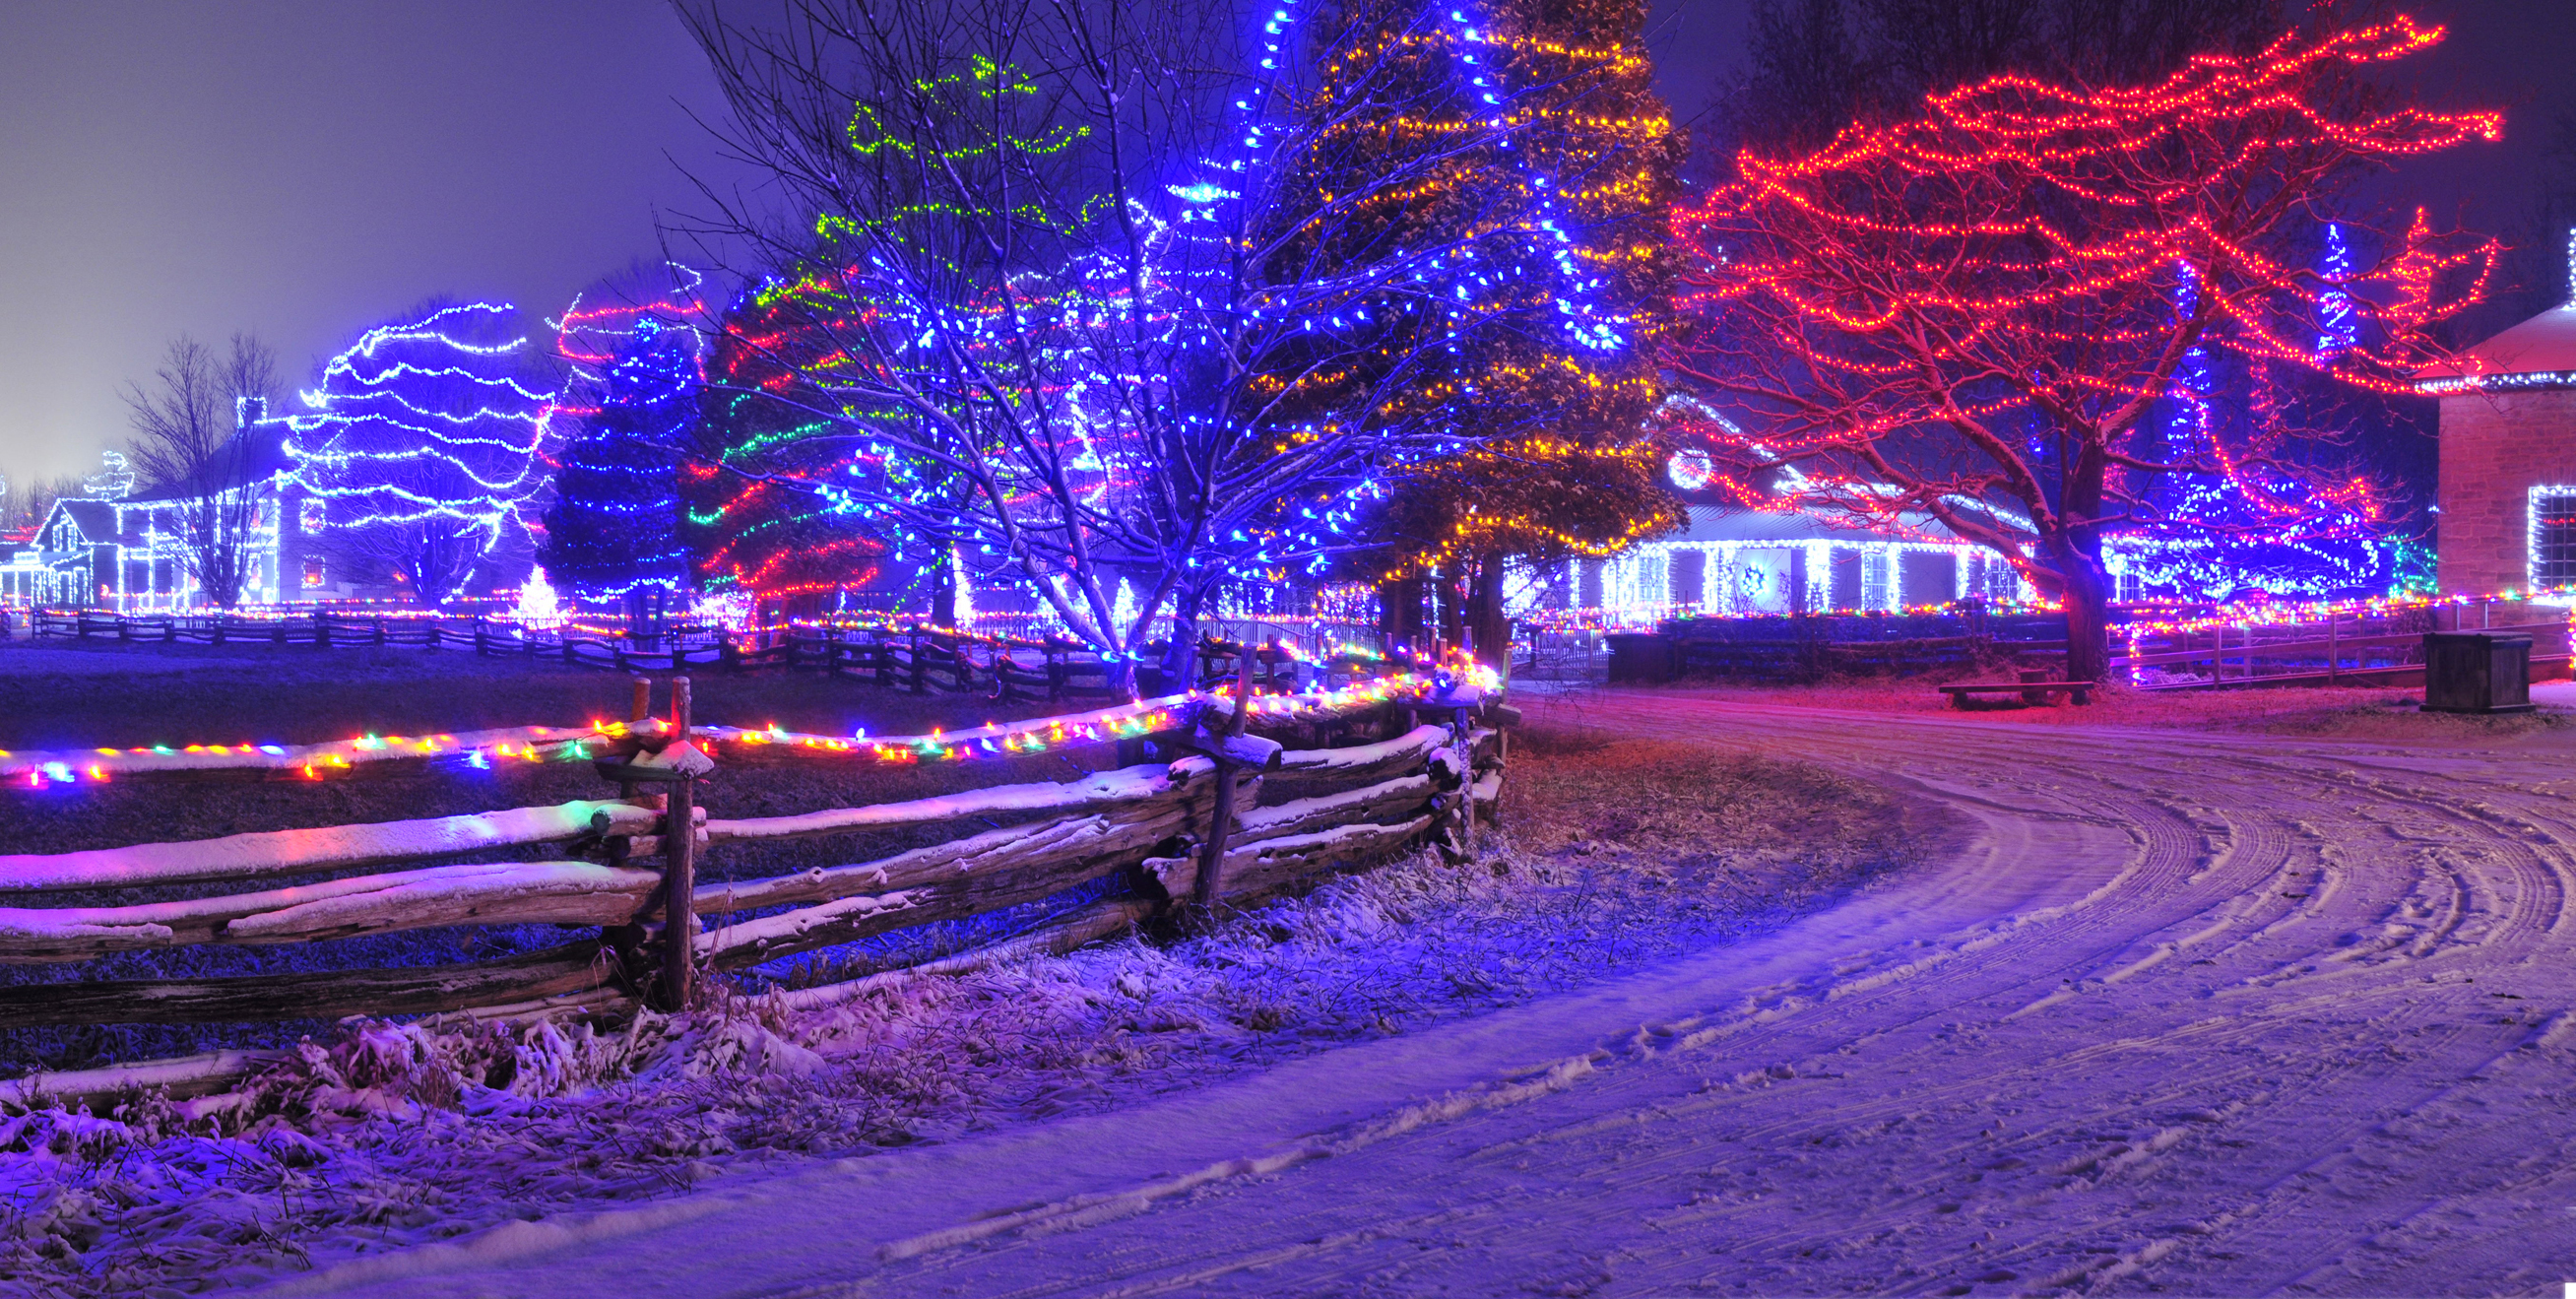 Night lights upper canada village - Aan Toy Trian